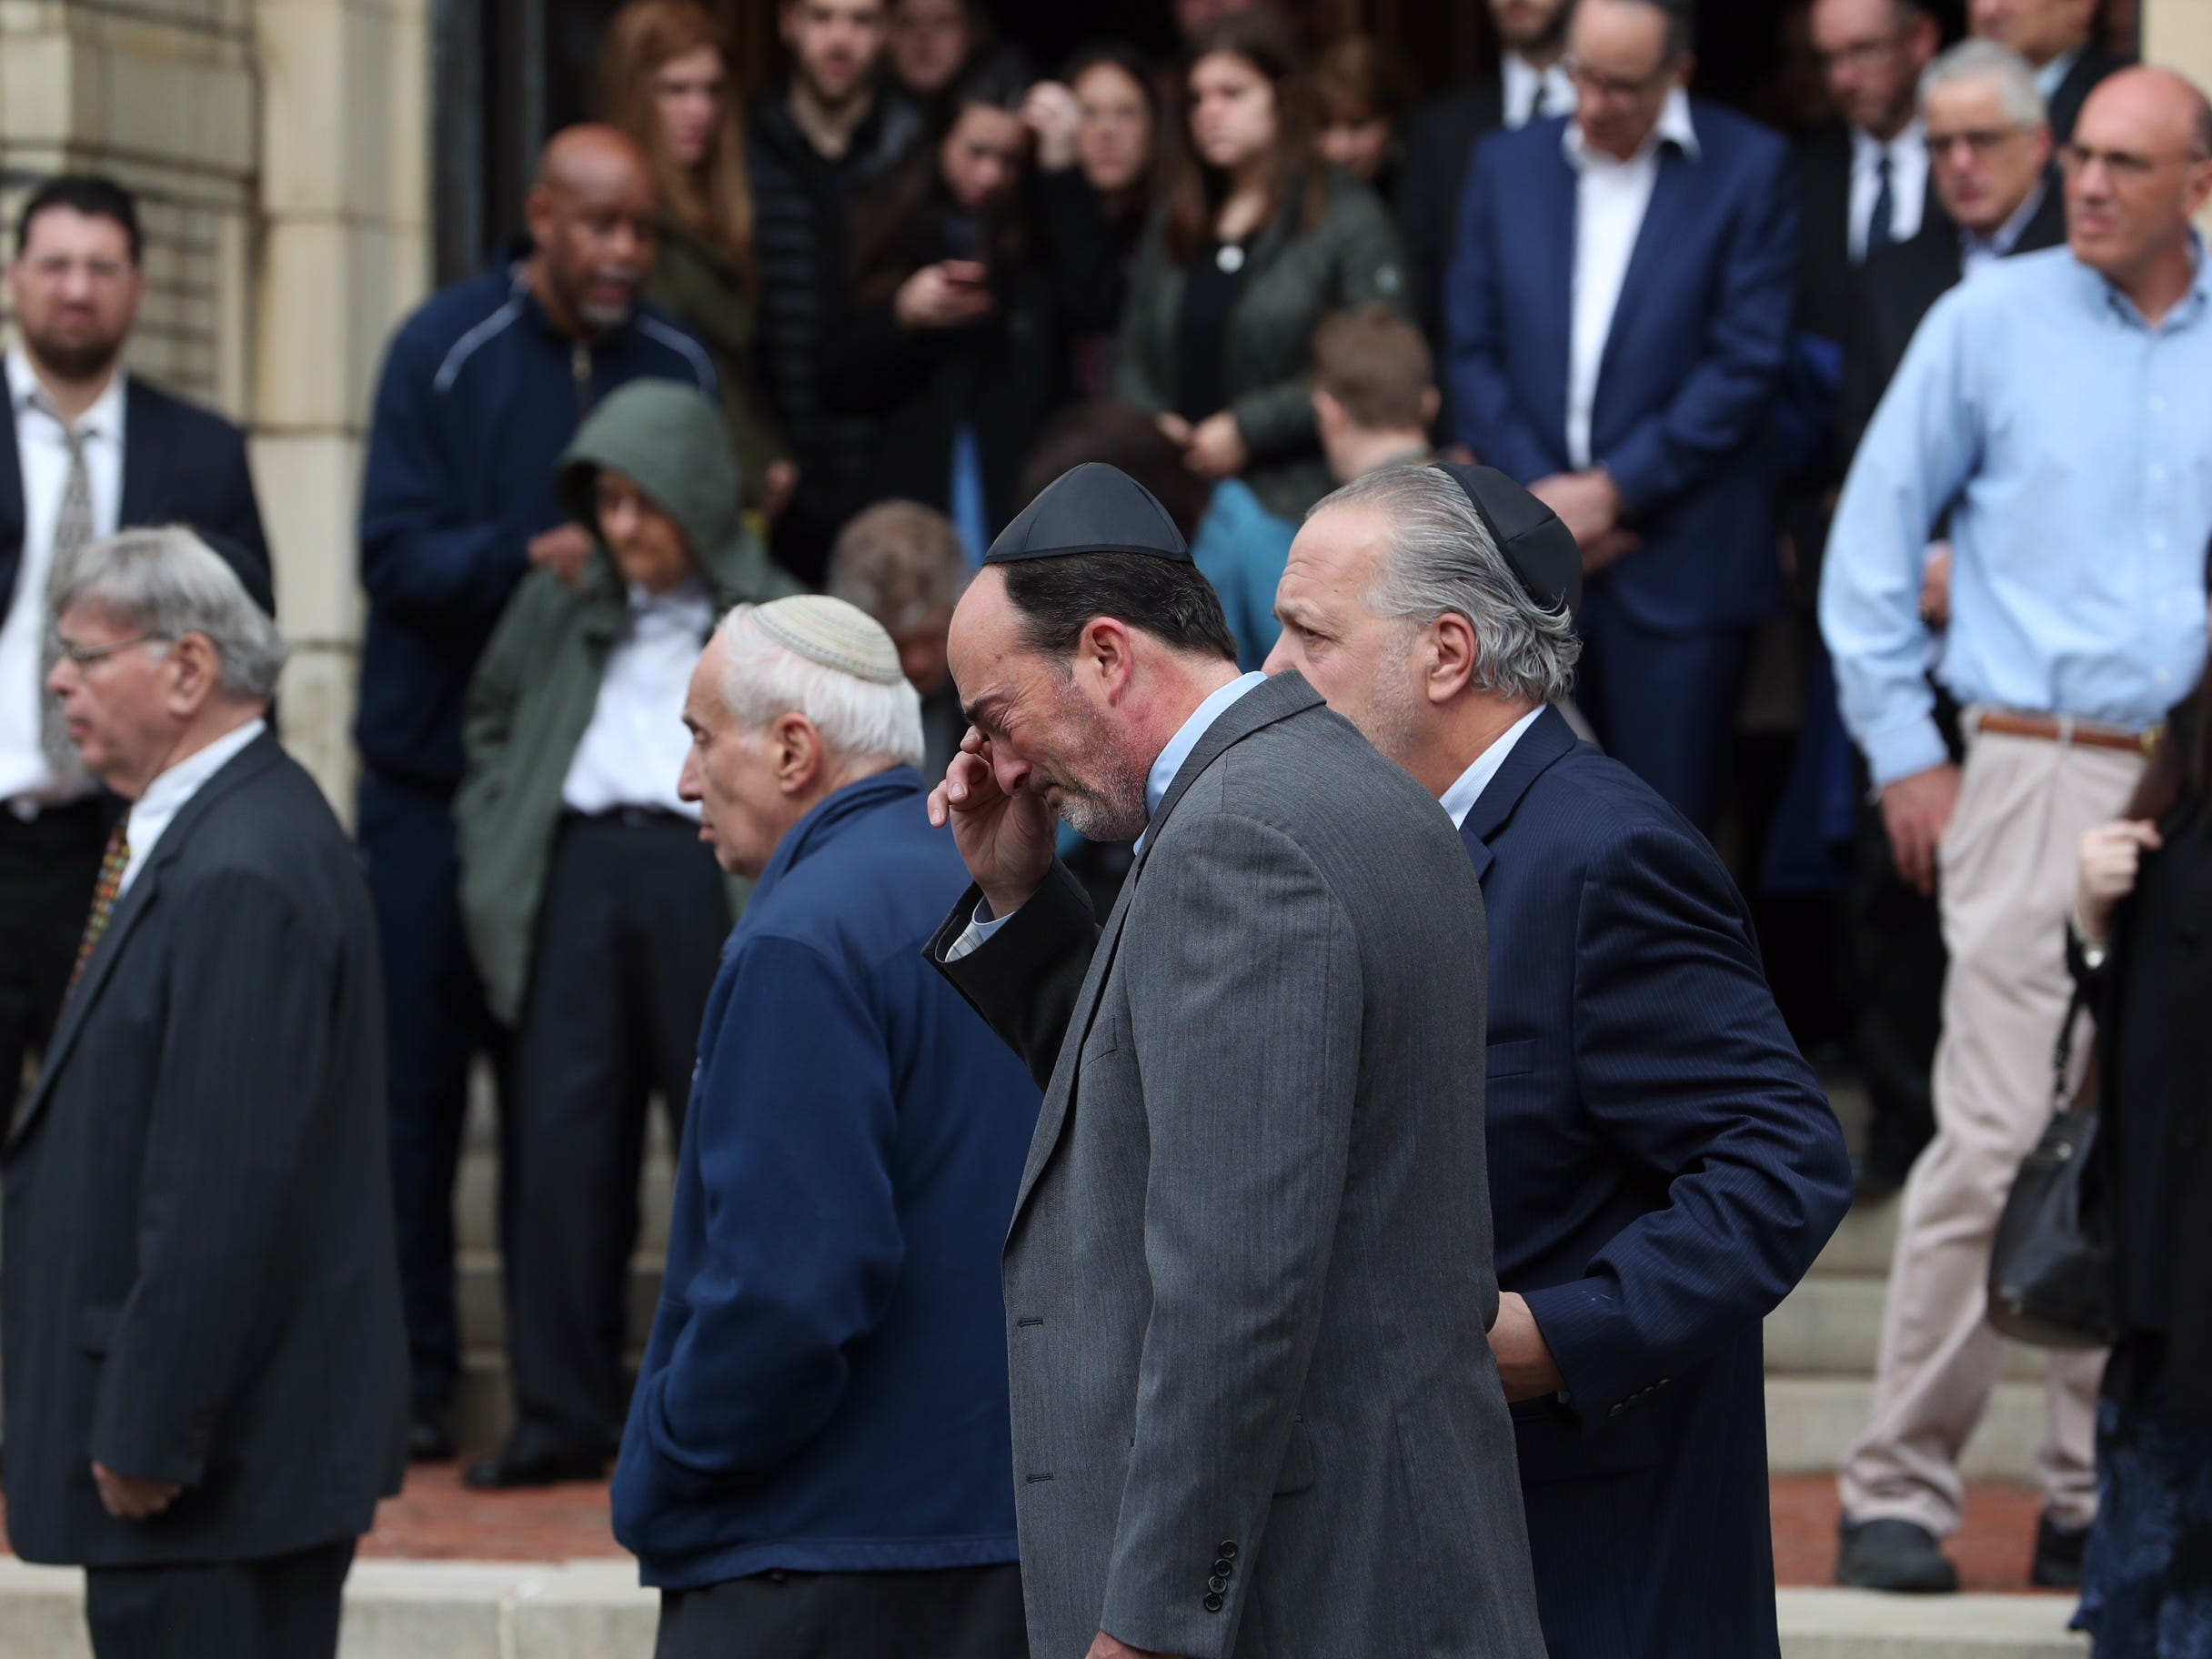 Mourners stand outside as the caskets of brothers David and Cecil Rosenthal are carried out together at the conclusion of funeral services at the Rodef Shalom Congregation in Pittsburgh, Pa., Tuesday, Oct. 30, 2018.